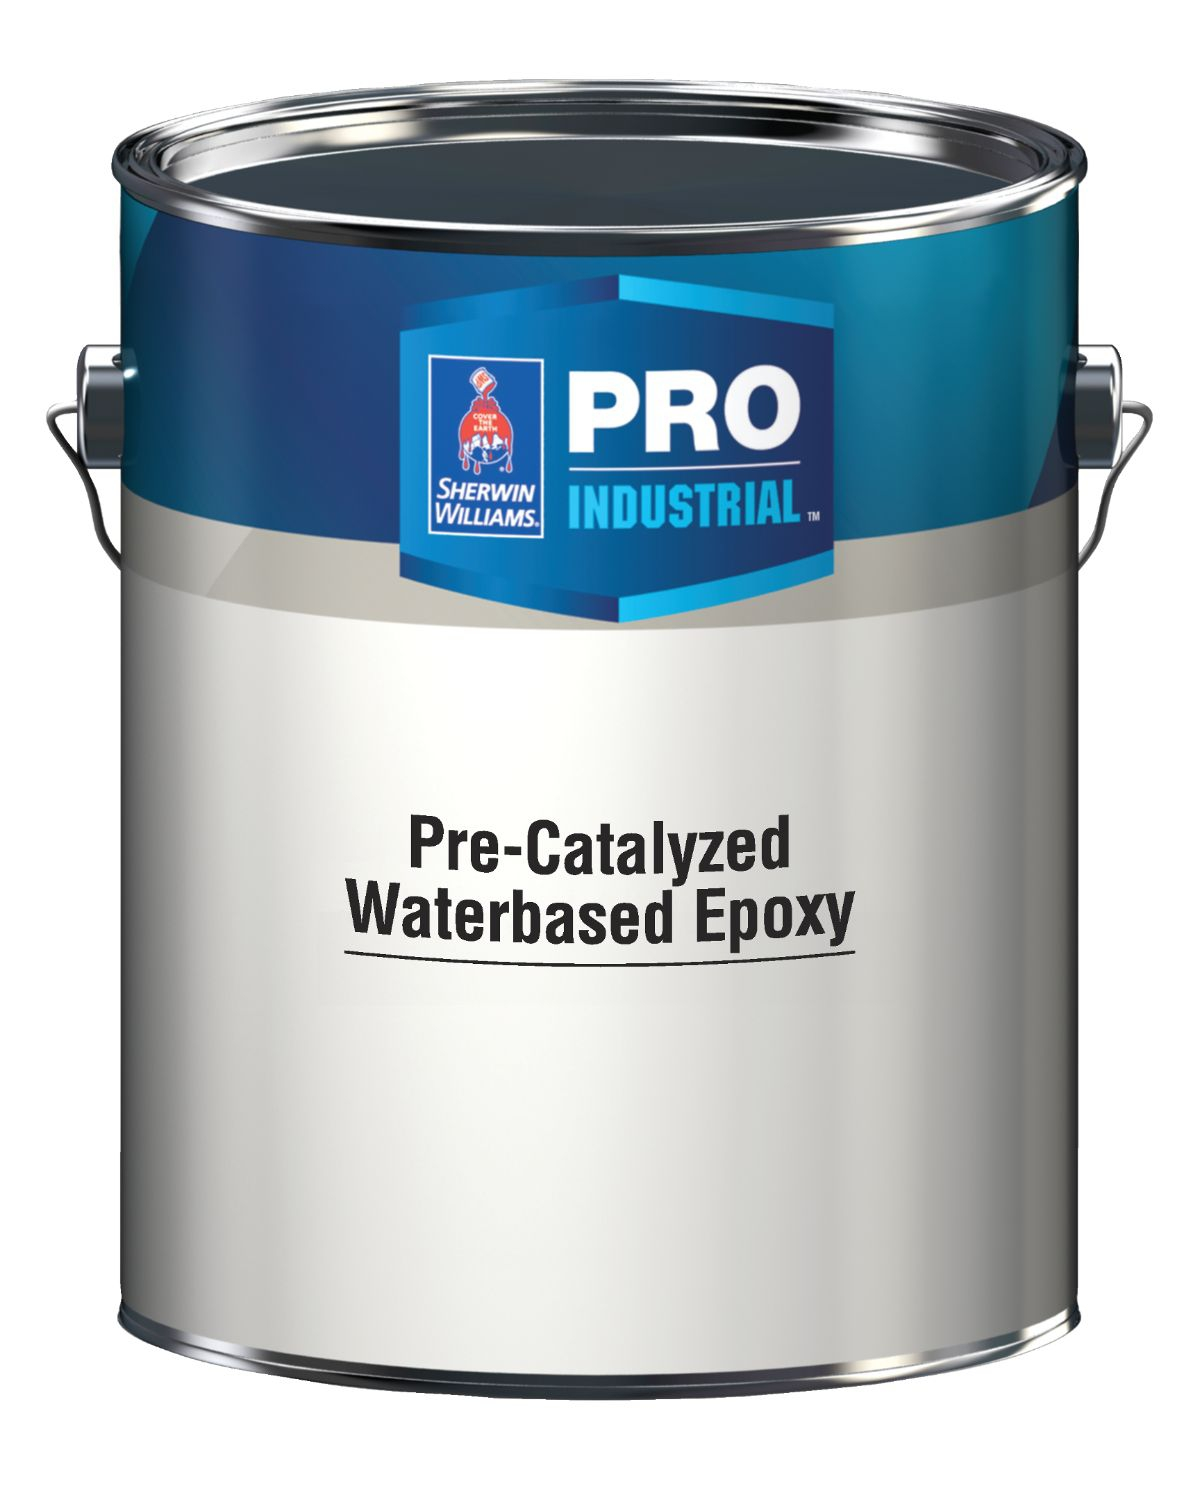 Pro Industrial™ Pre-catalyzed Water Based Epoxy